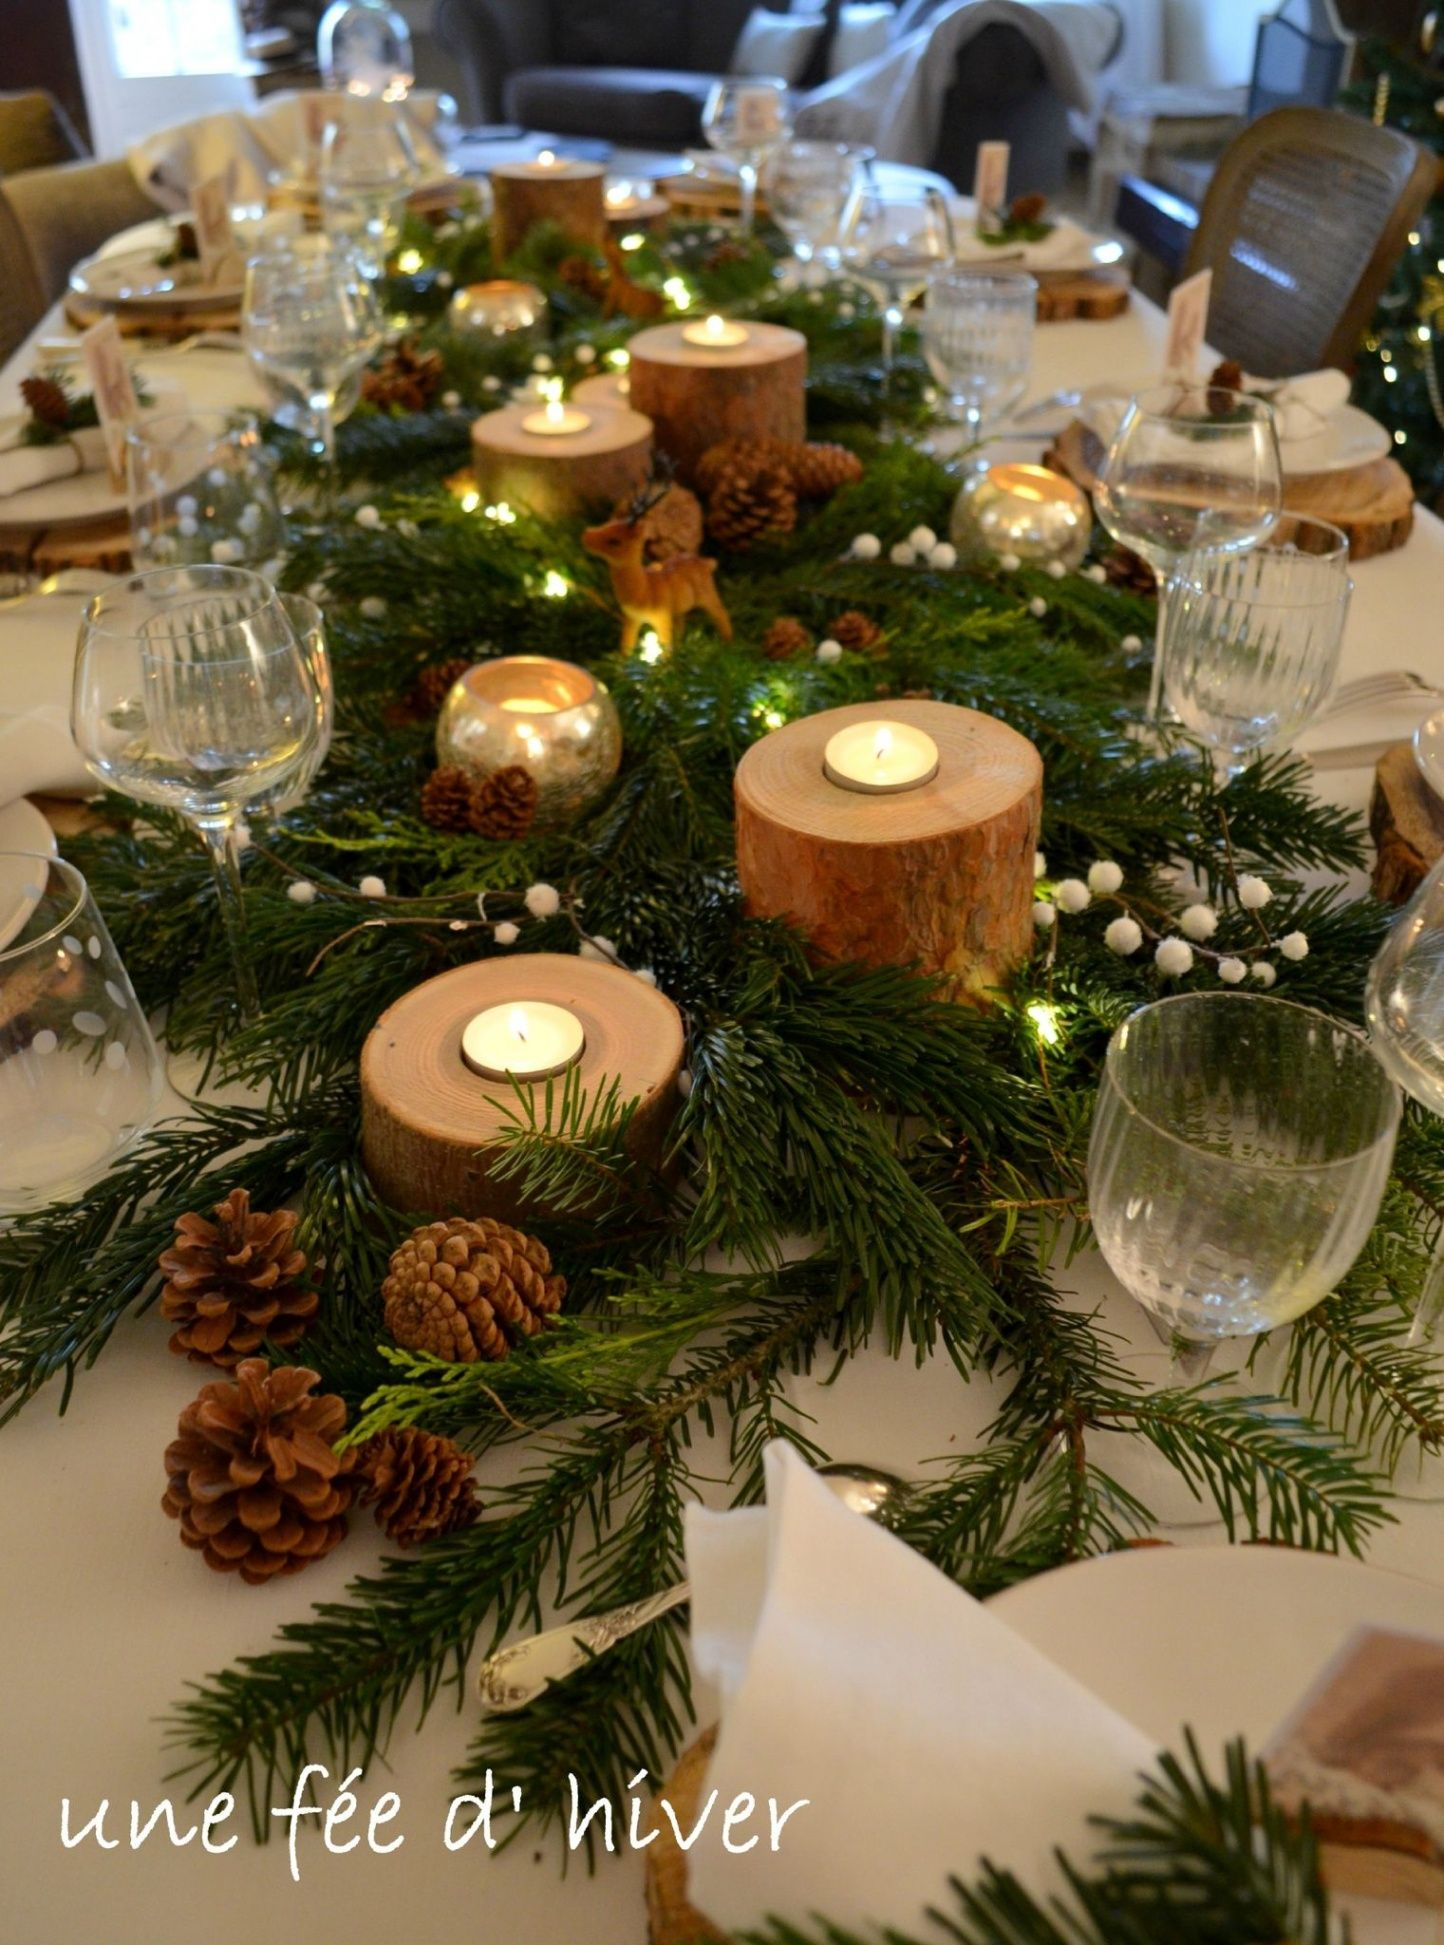 Image Result For Image Table Noel Christmas Centerpieces Christmas Table Decorations Christmas Table Centerpieces